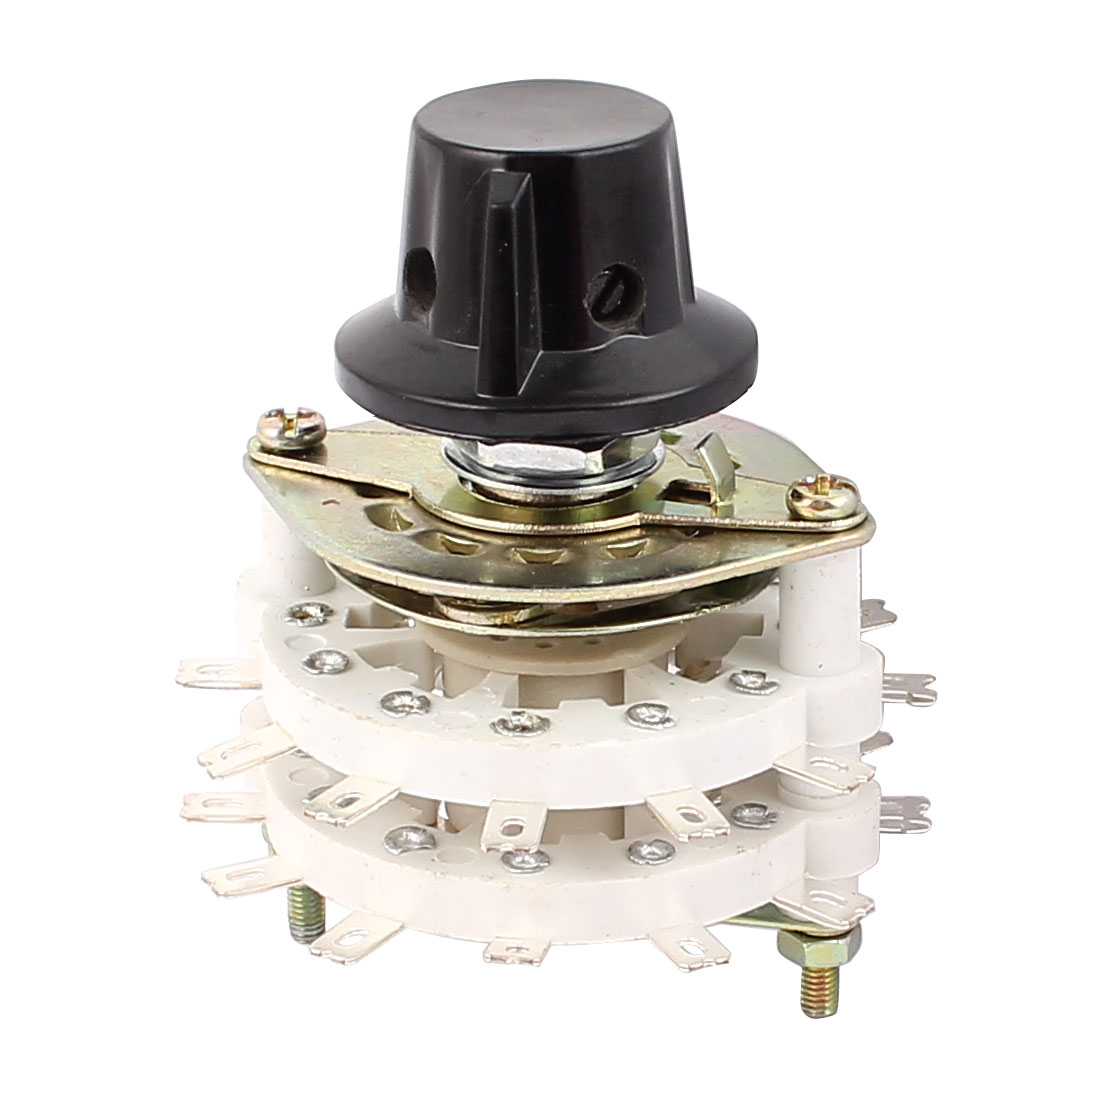 KCT 2 Pole 11 Throw 6mm Shaft Band Channel Rotary Switch Selector w Cap